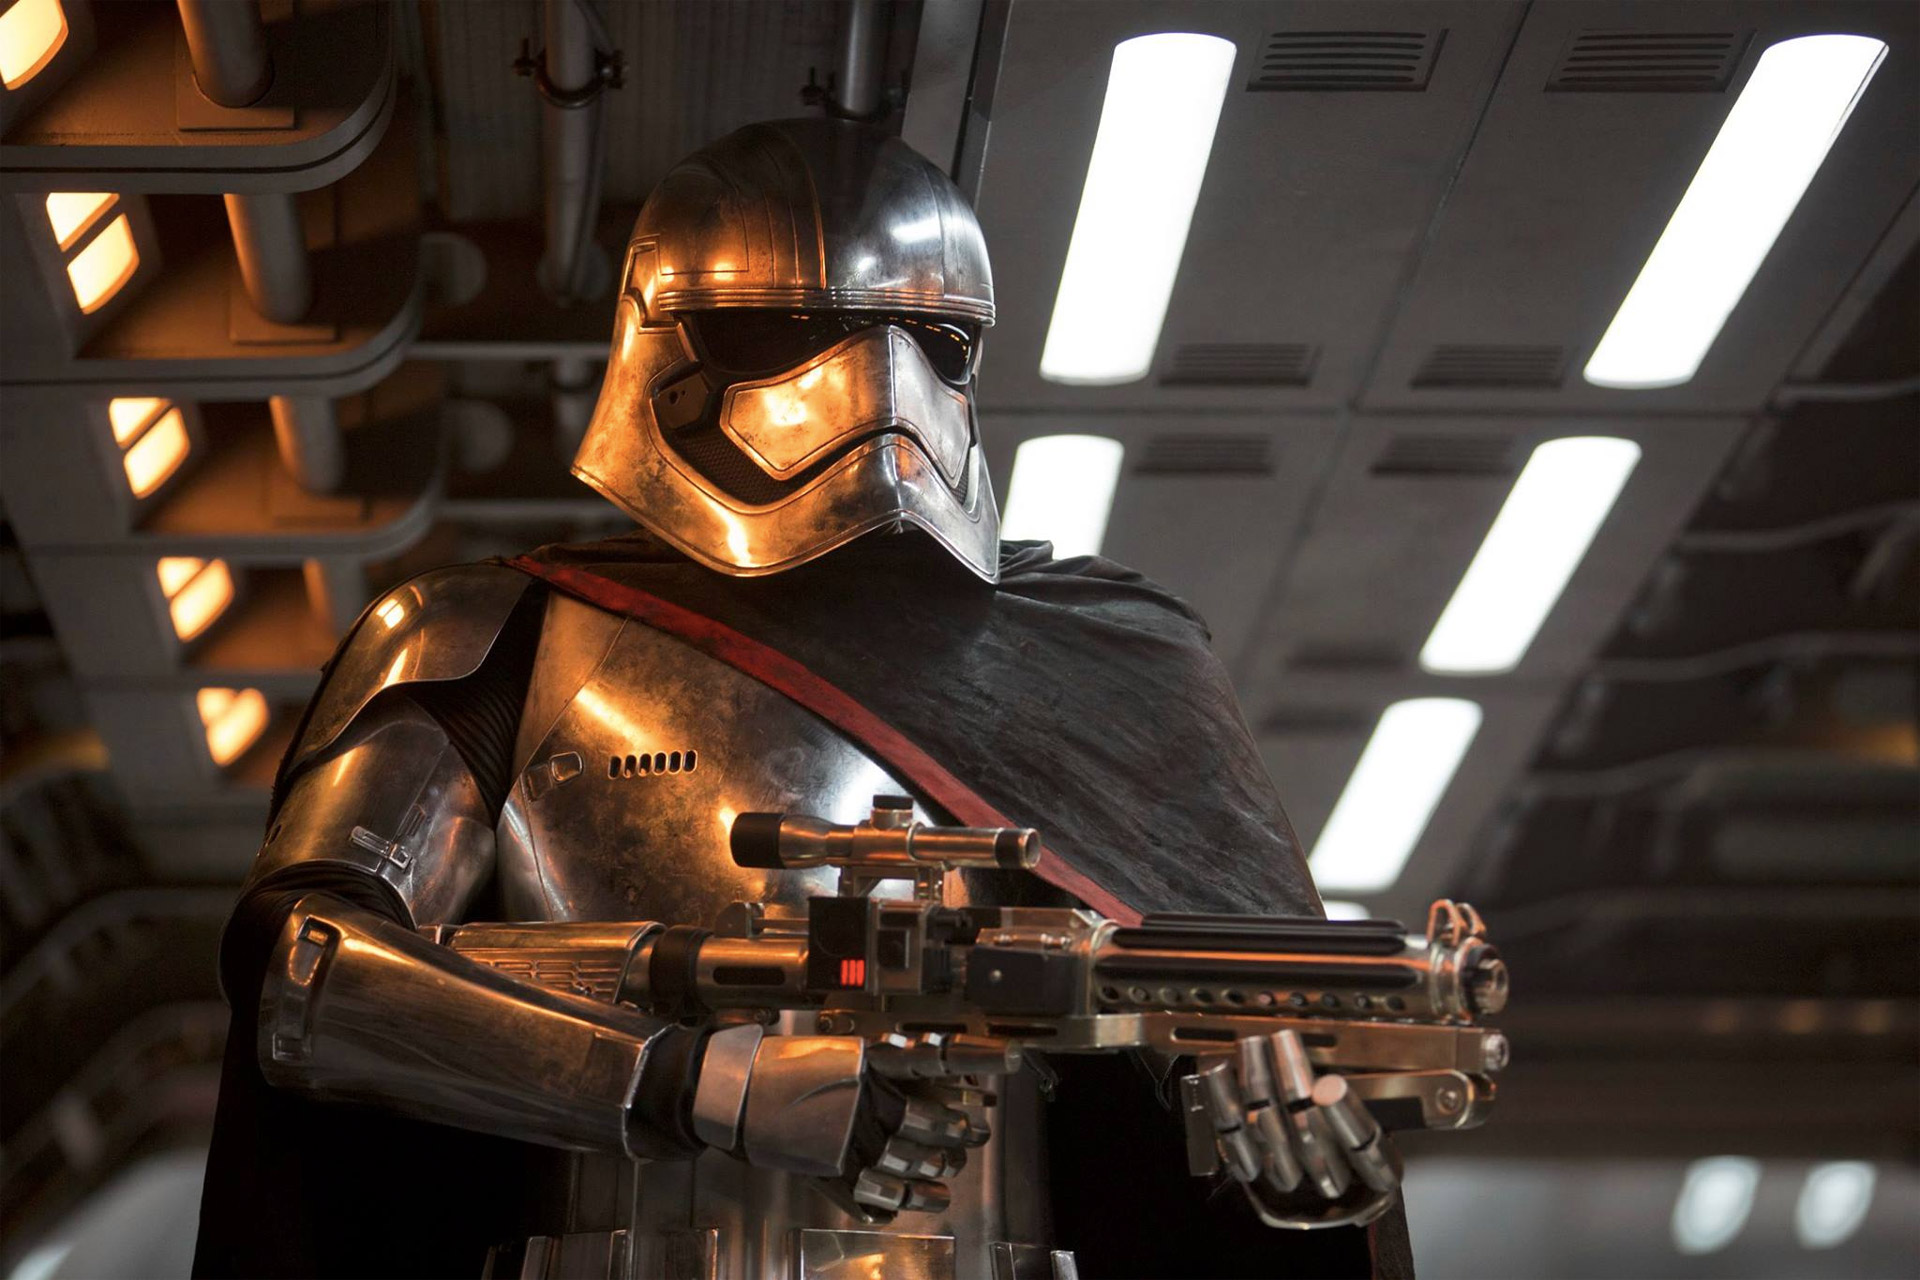 Star Wars Episode 9 to be directed by Jurassic World's Colin Trevorrow